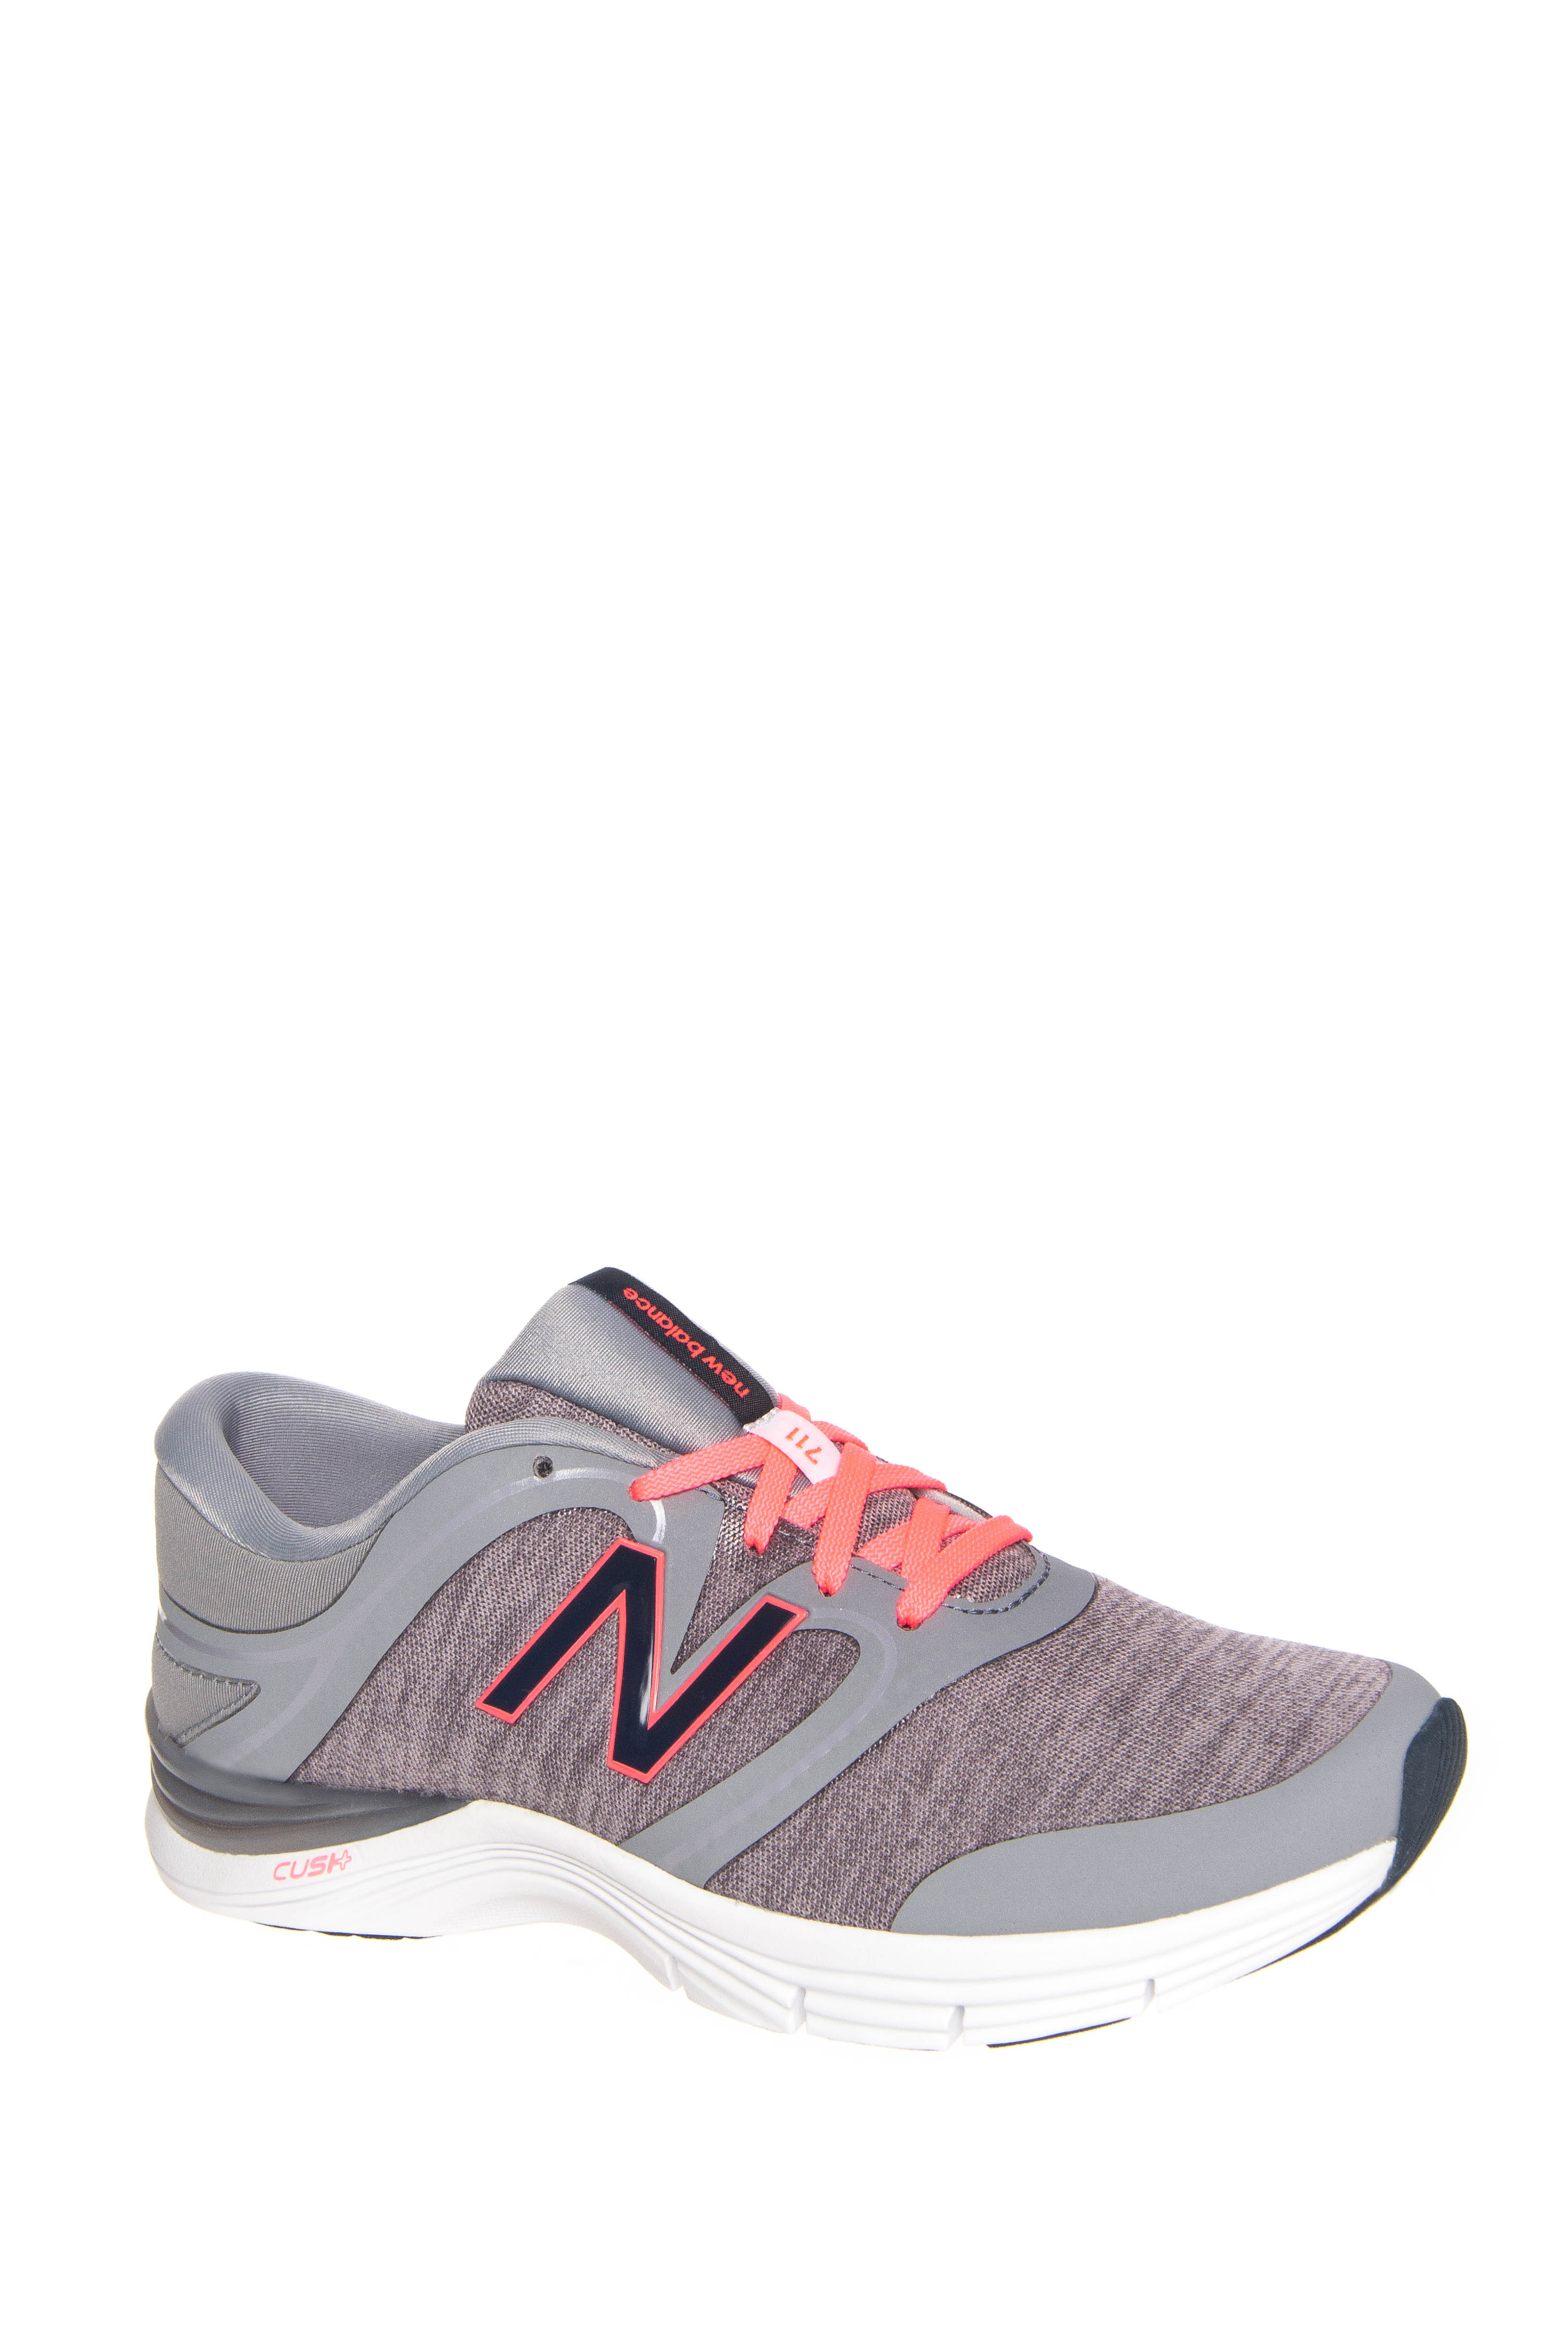 New Balance 711v2 Heathered Trainer Low Top Sneakers - Steel